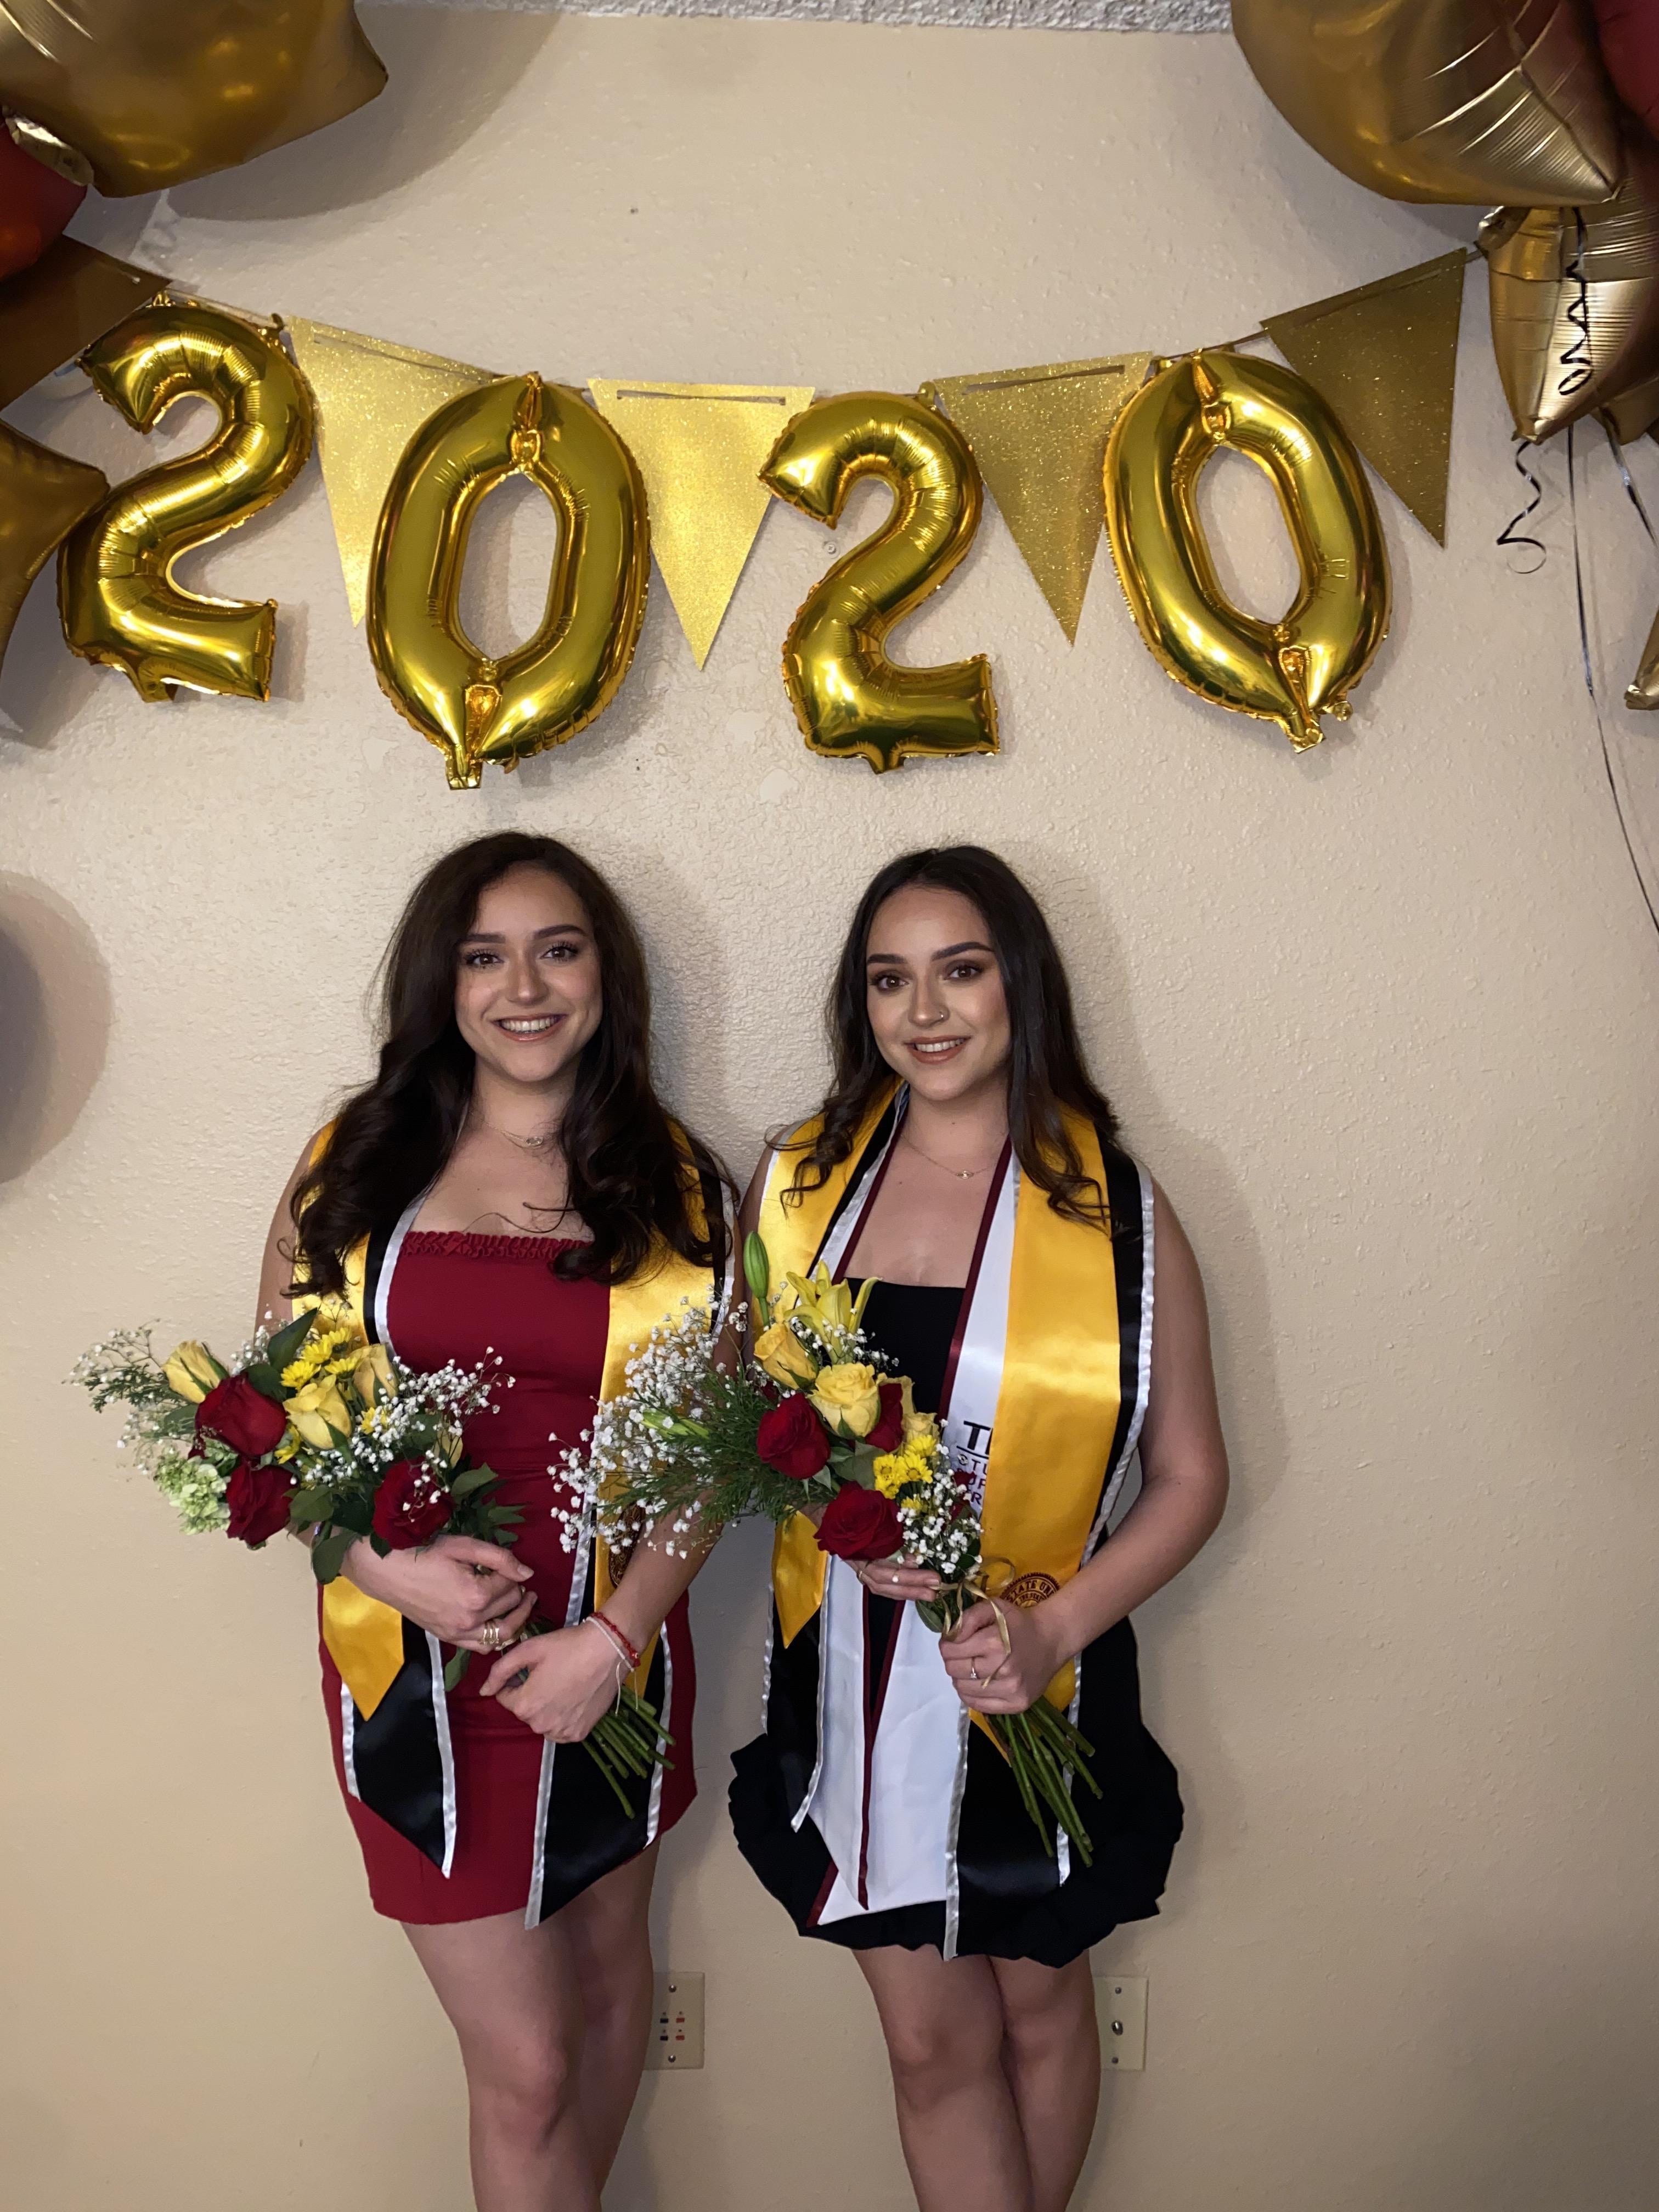 ASU twins Anahi and Sarahi Montano pose in front of graduation set up with balloons and flowers.